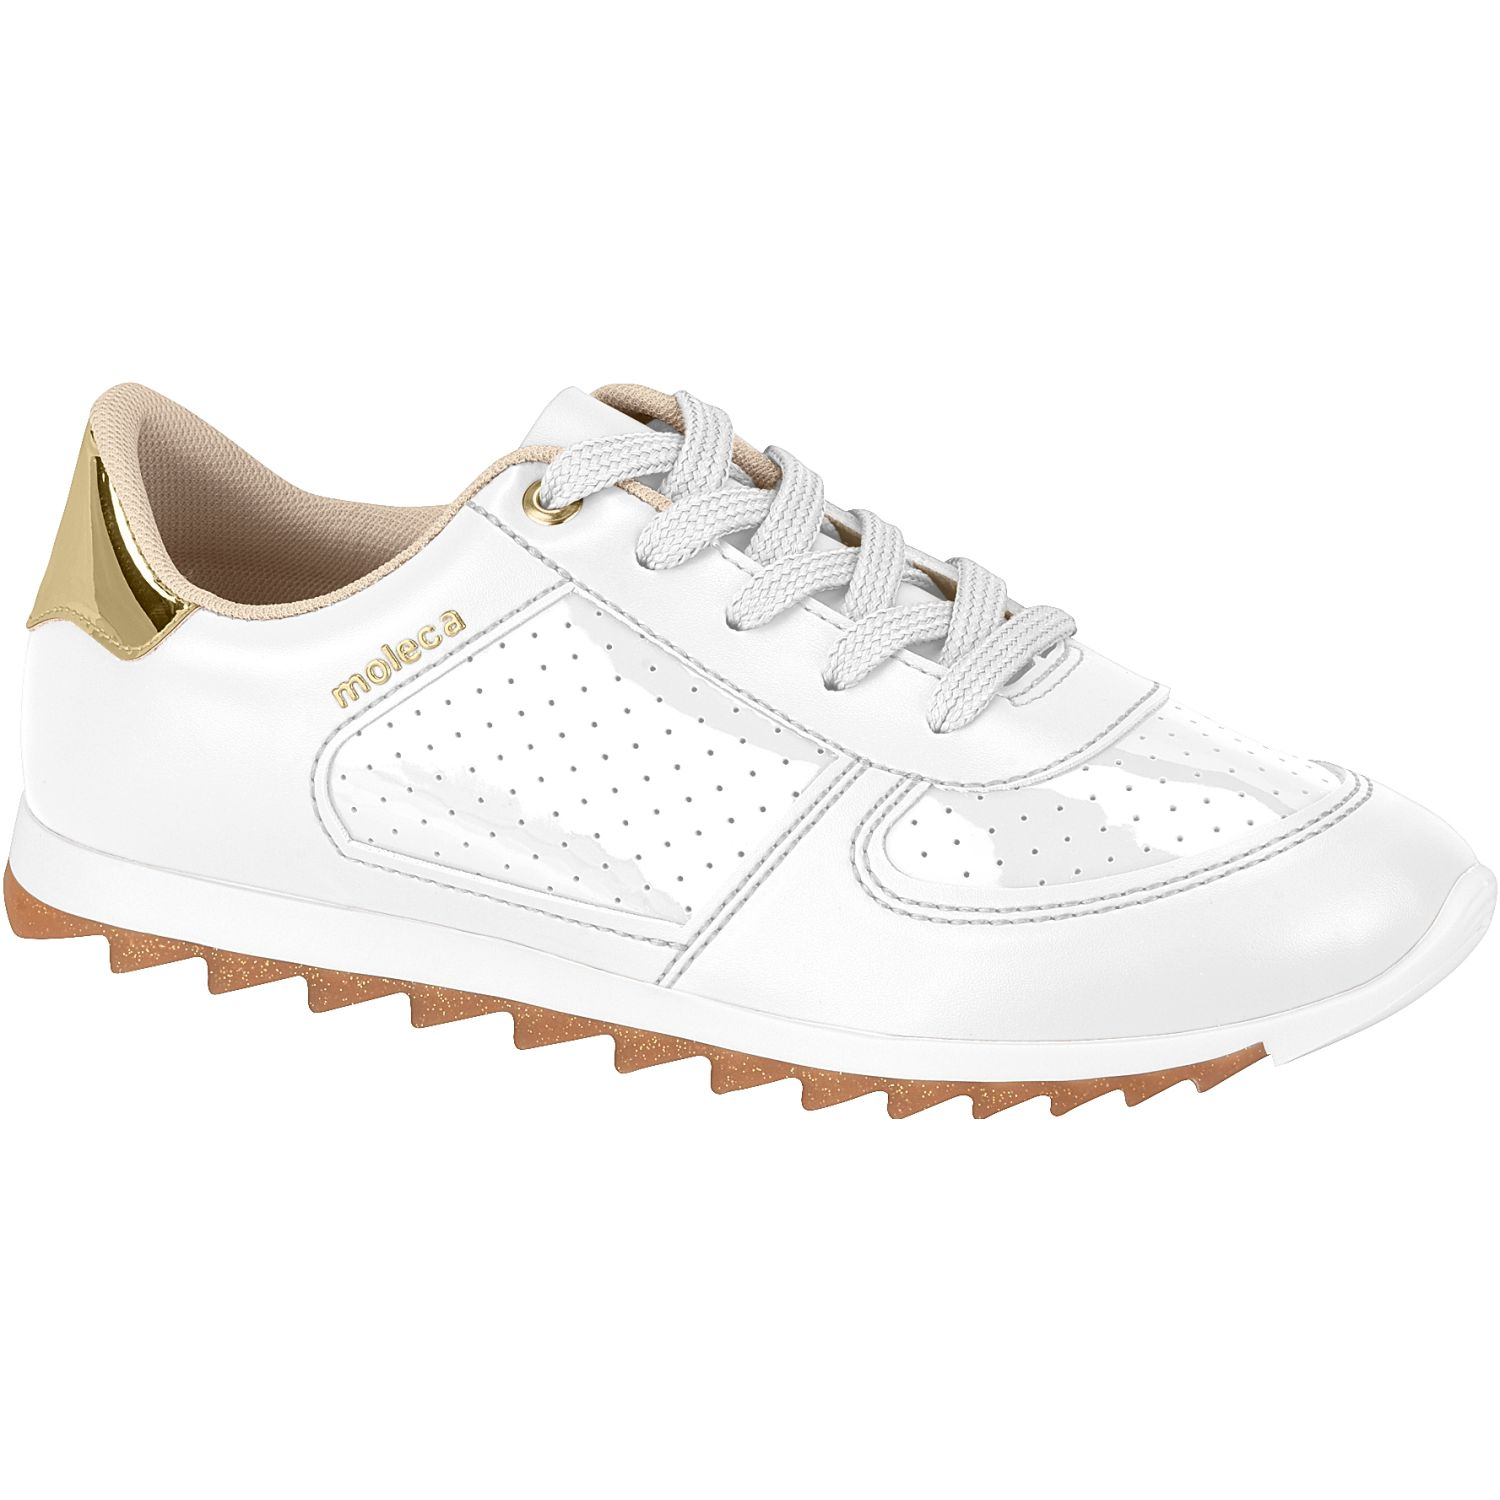 MOLECA 5690.105.20389-17165 Blanco / dorado Zapatillas Fashion